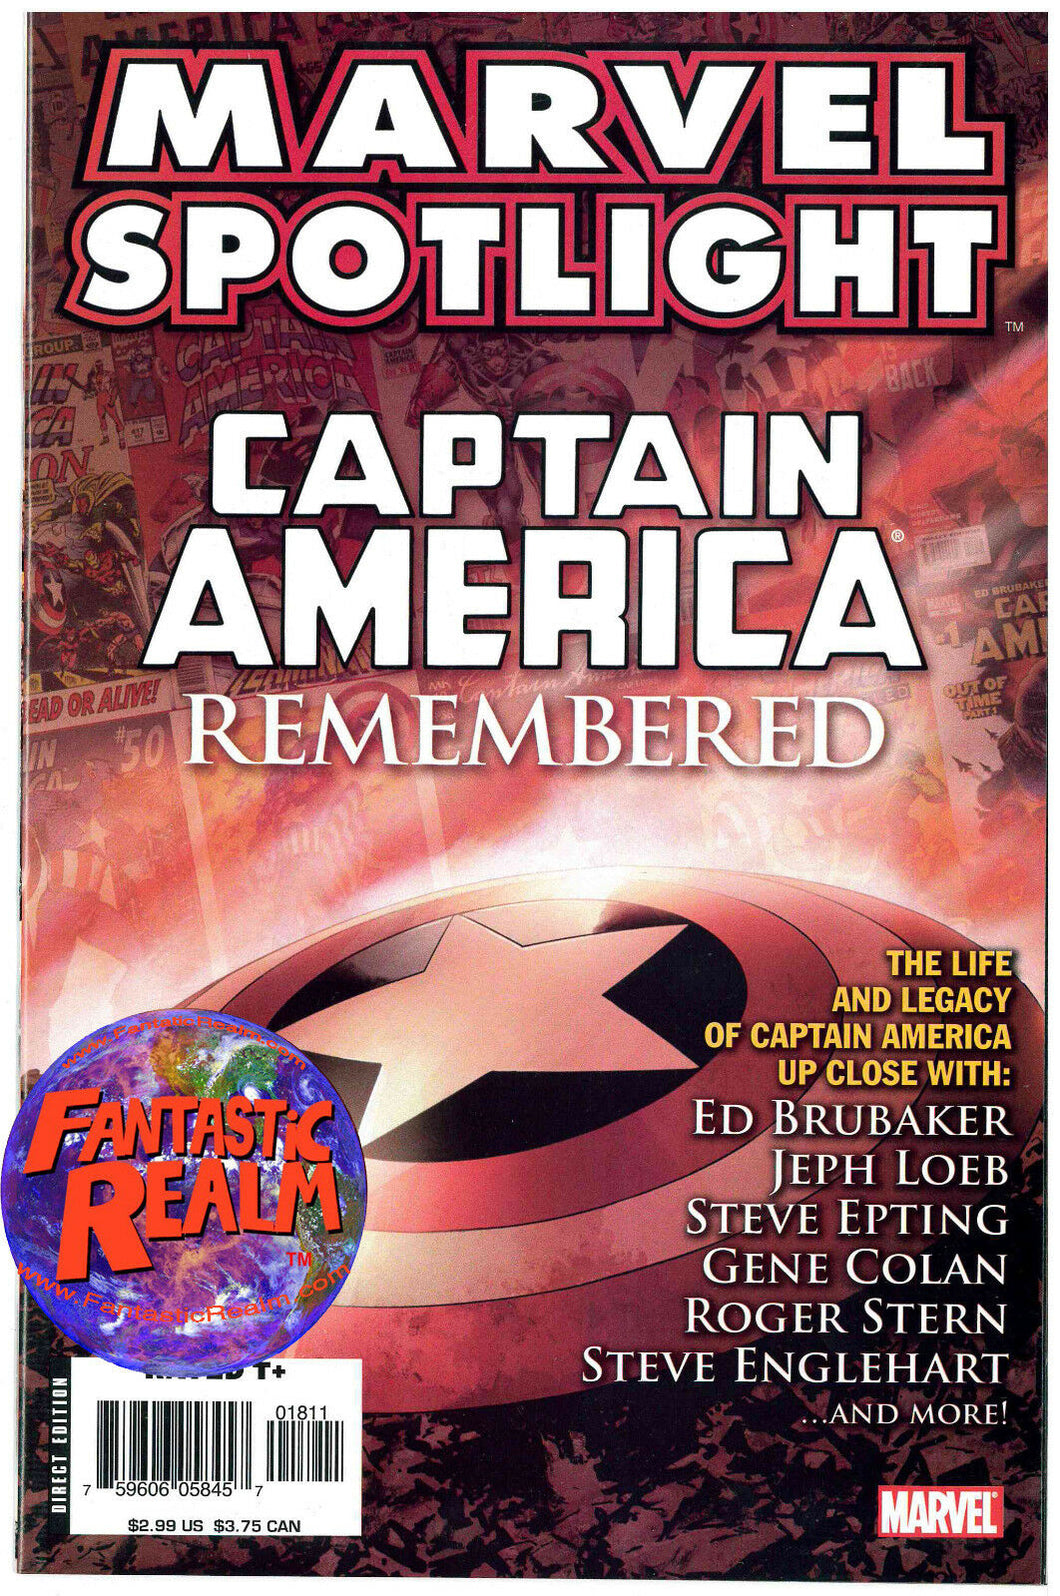 MARVEL SPOTLIGHT: CAPTAIN AMERICA REMEMBERED MARVEL COMICS